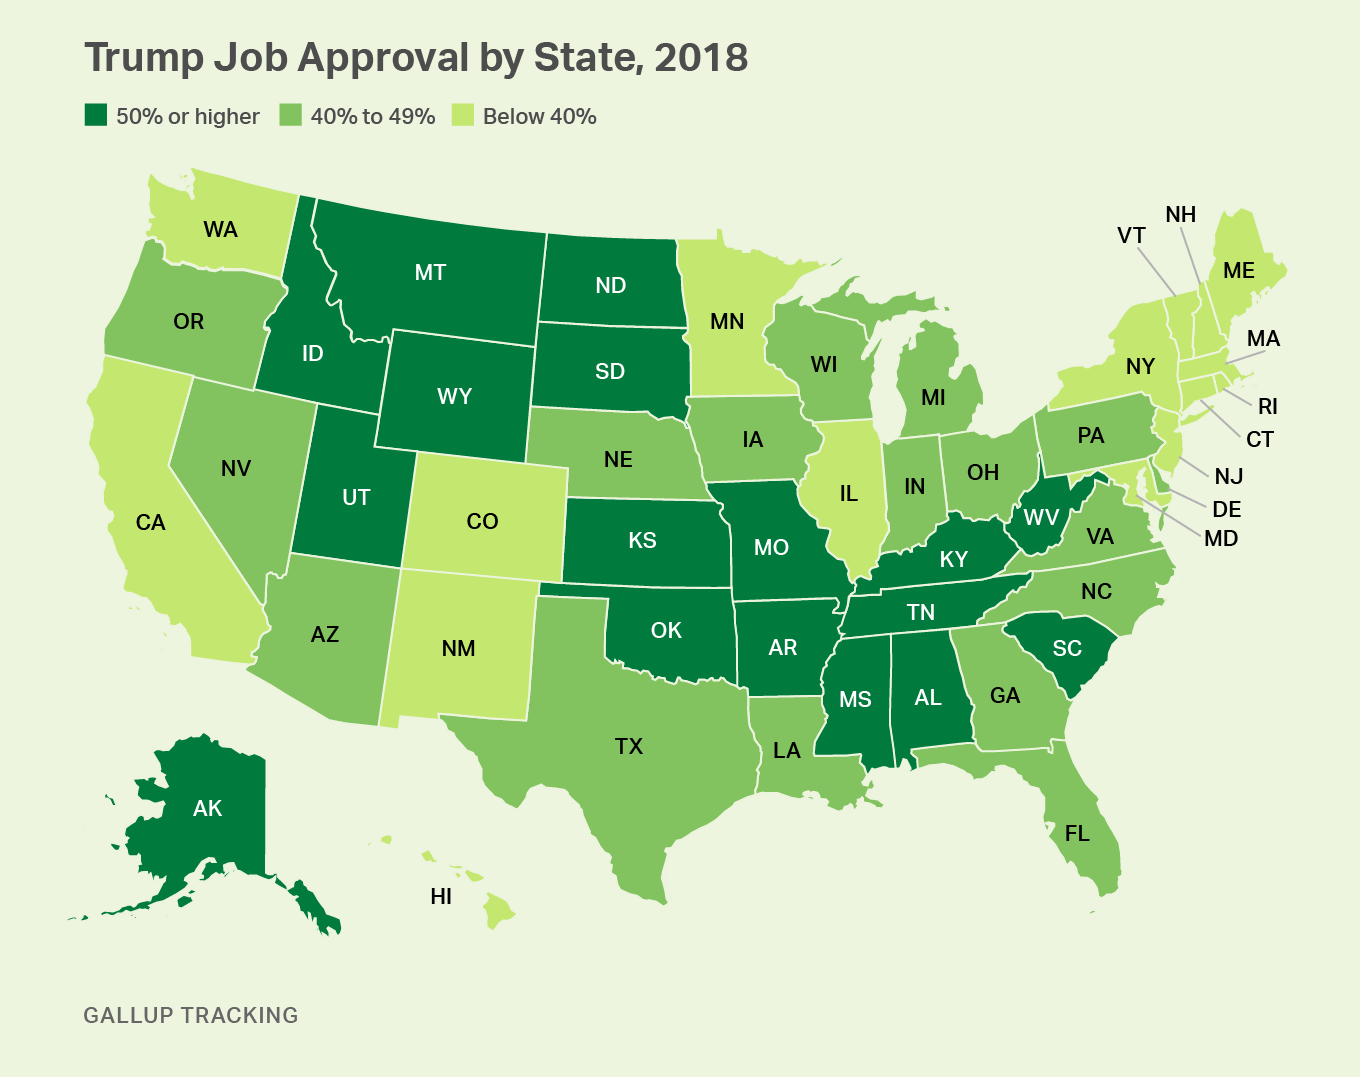 Map. President Trump Job Approval by State, 2018. Divided into 50%+ approval, 40%-49% approval, less than 40% approval.